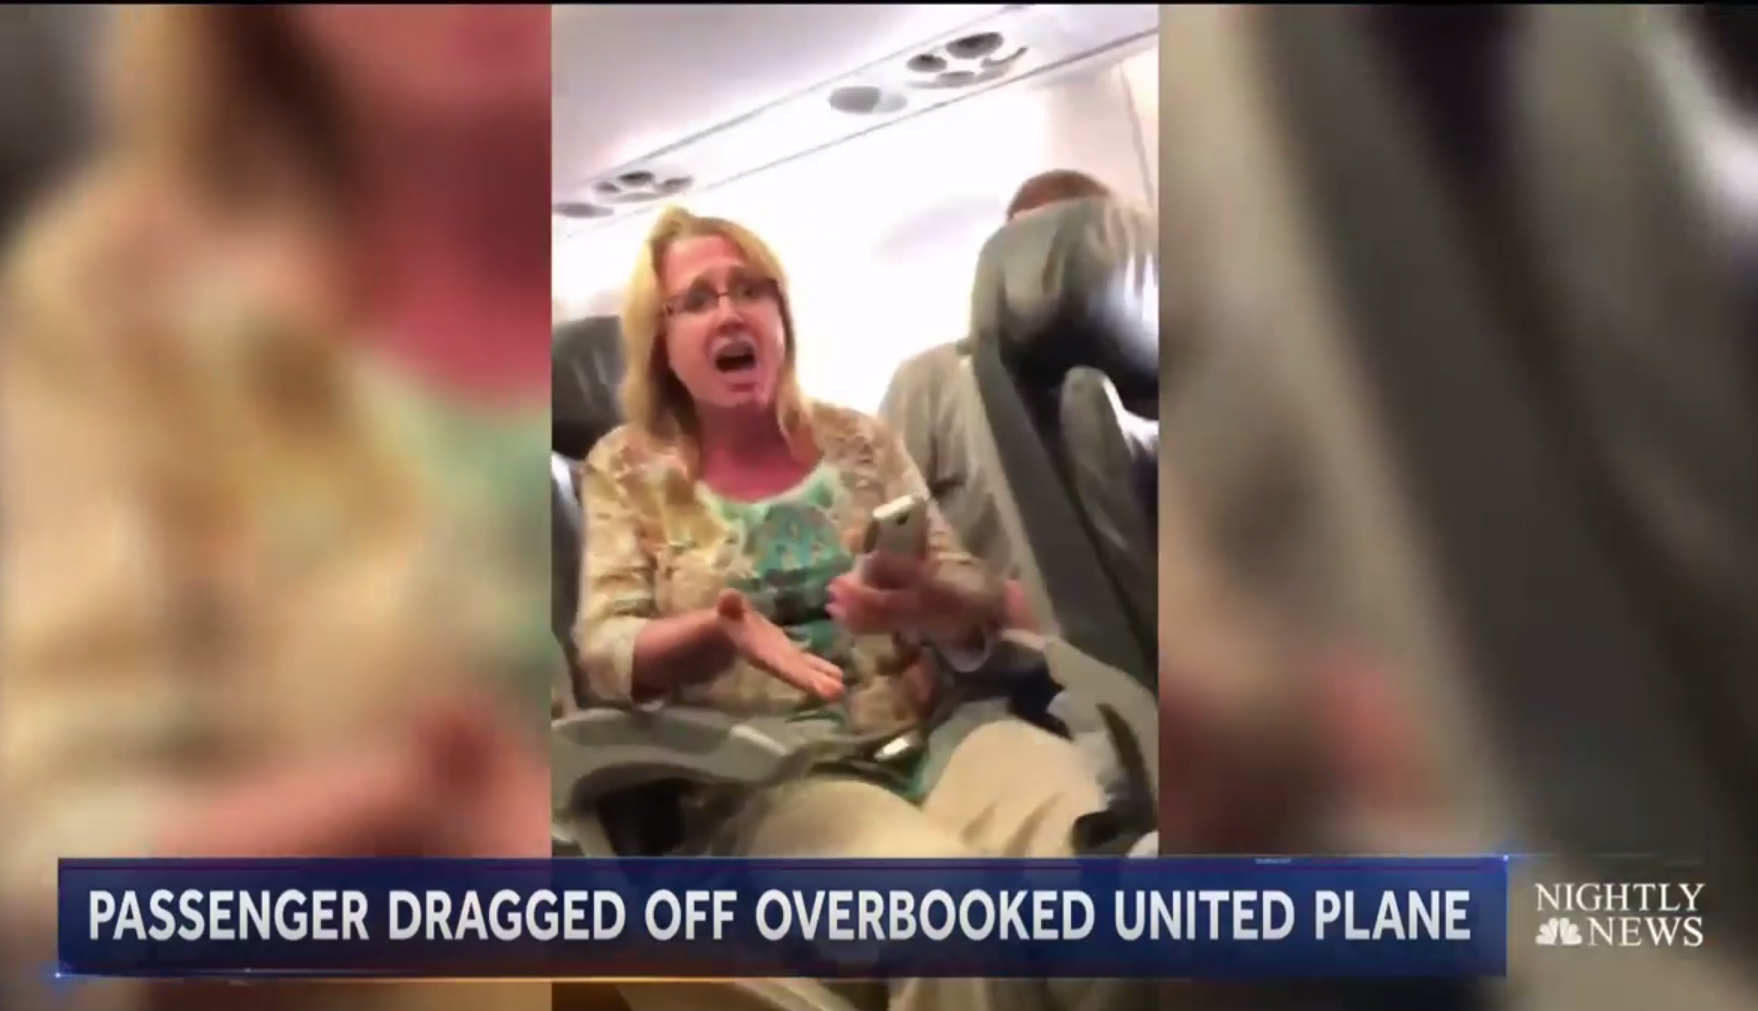 An image of a video on the news of a passenger on a United Airlines flight